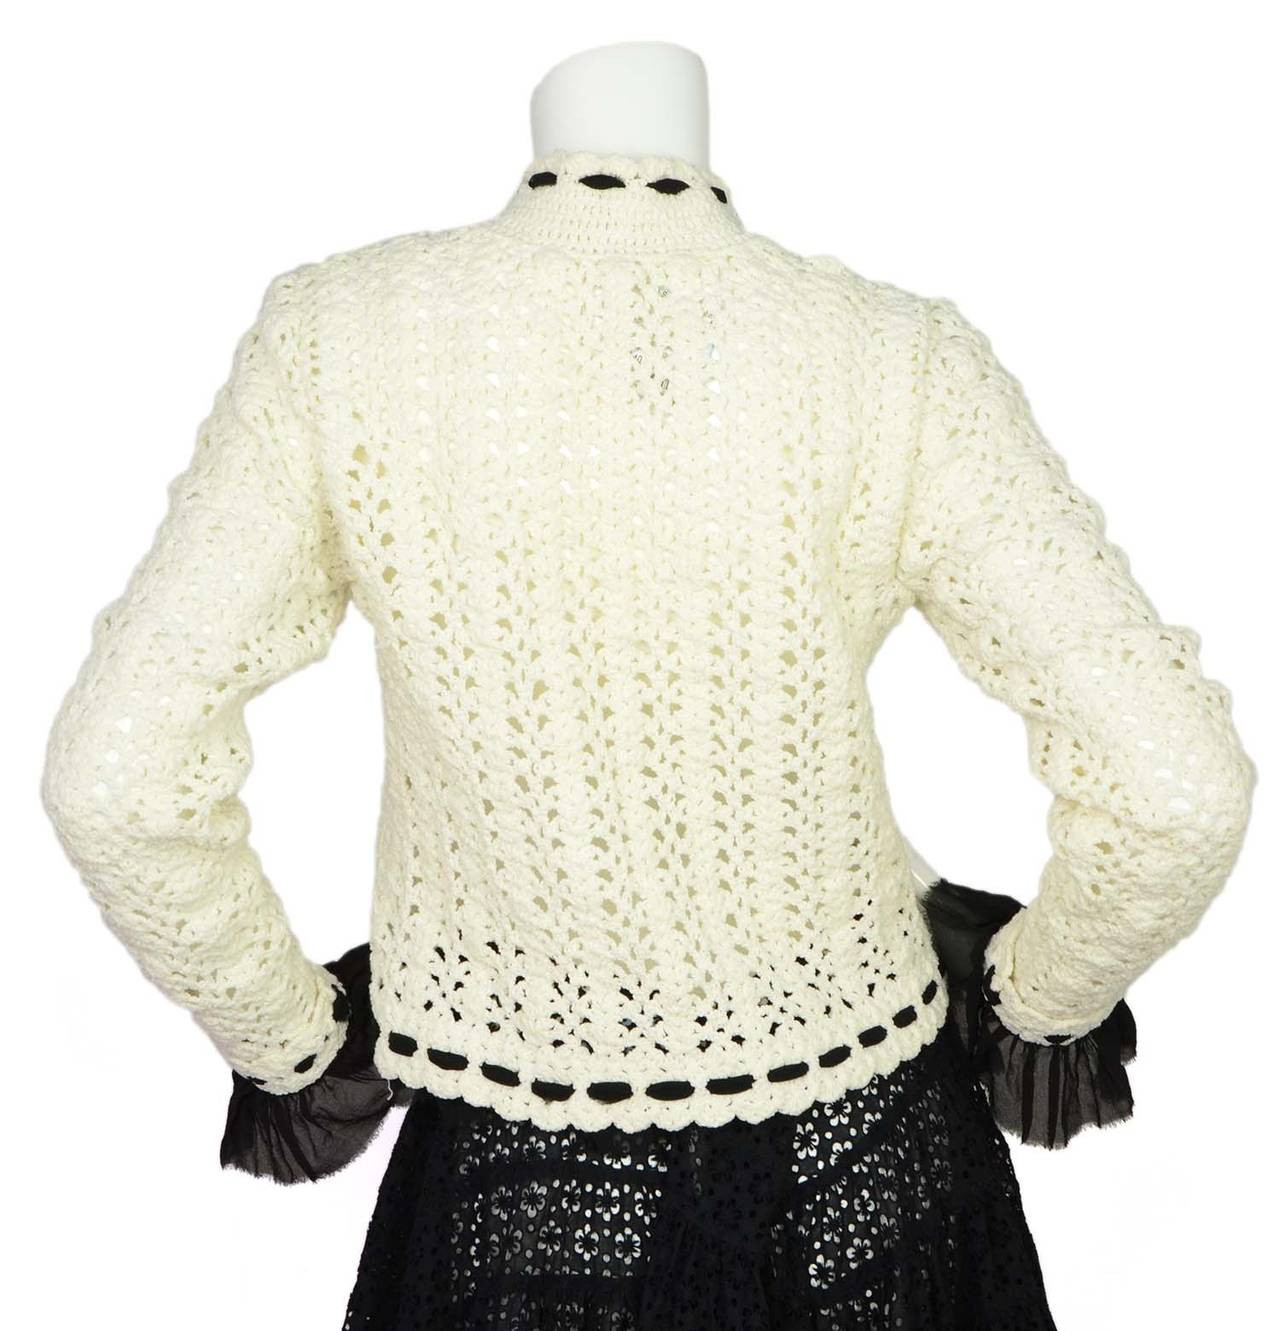 CHANEL White and Black Crochet Cardigan sz 40 at 1stdibs